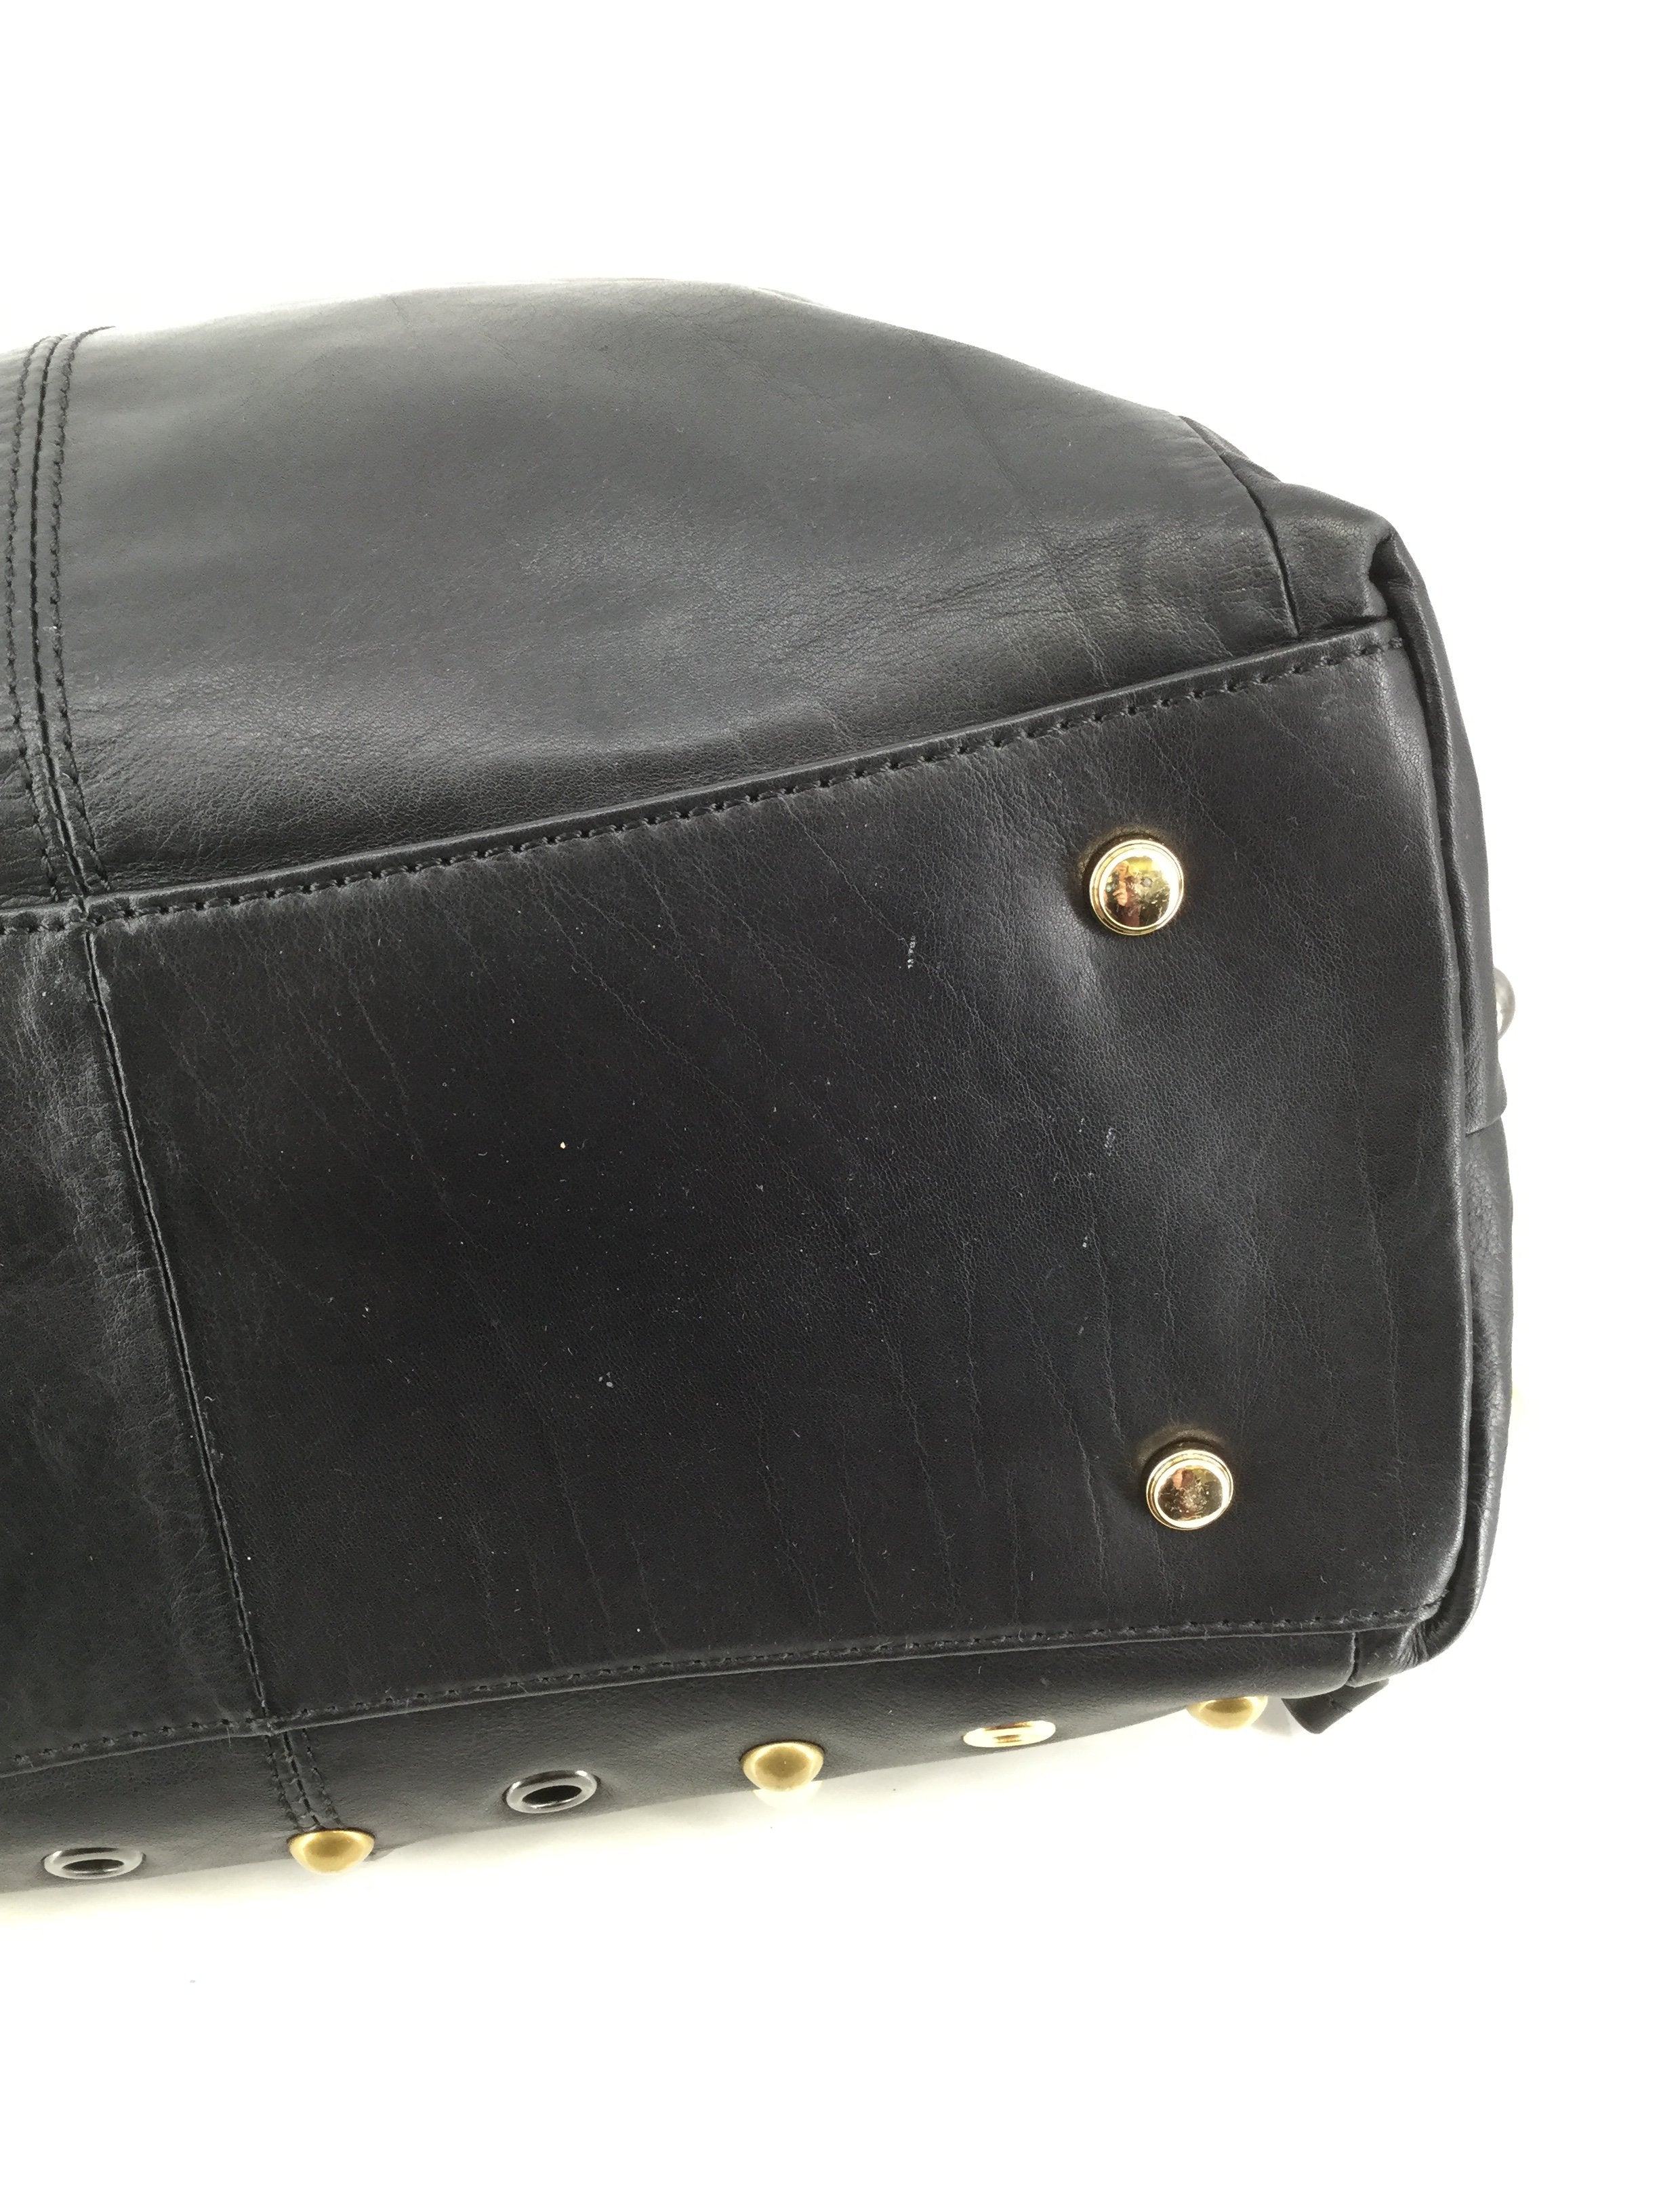 B Makowsky Studded Designer Handbag, Black, Size Medium - <P>SAY HELLO TO THIS BEAUTY, BLACK STUDDED B MAKOWSKY DESIGNER HANDBAG UP FOR GRABS. MINOR CONDITION ON HARDWARE AND BOTTOM OF BAG, (SEE PHOTOS). MAKE HER YOURS TODAY FOR JUST $48.</P>